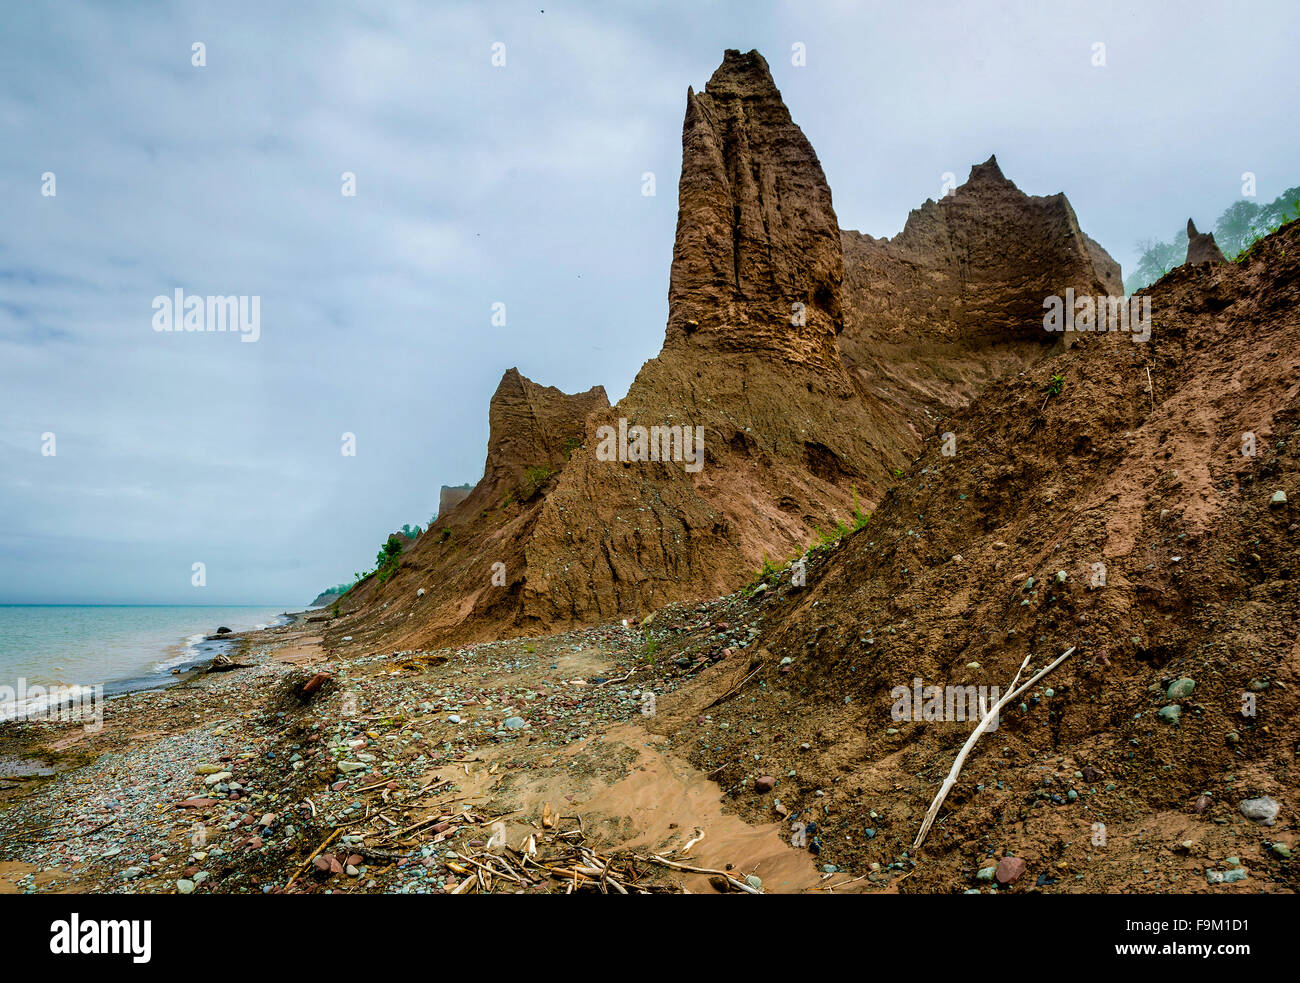 Chimney Bluffs on the shore of Lake Ontario, New York. - Stock Image